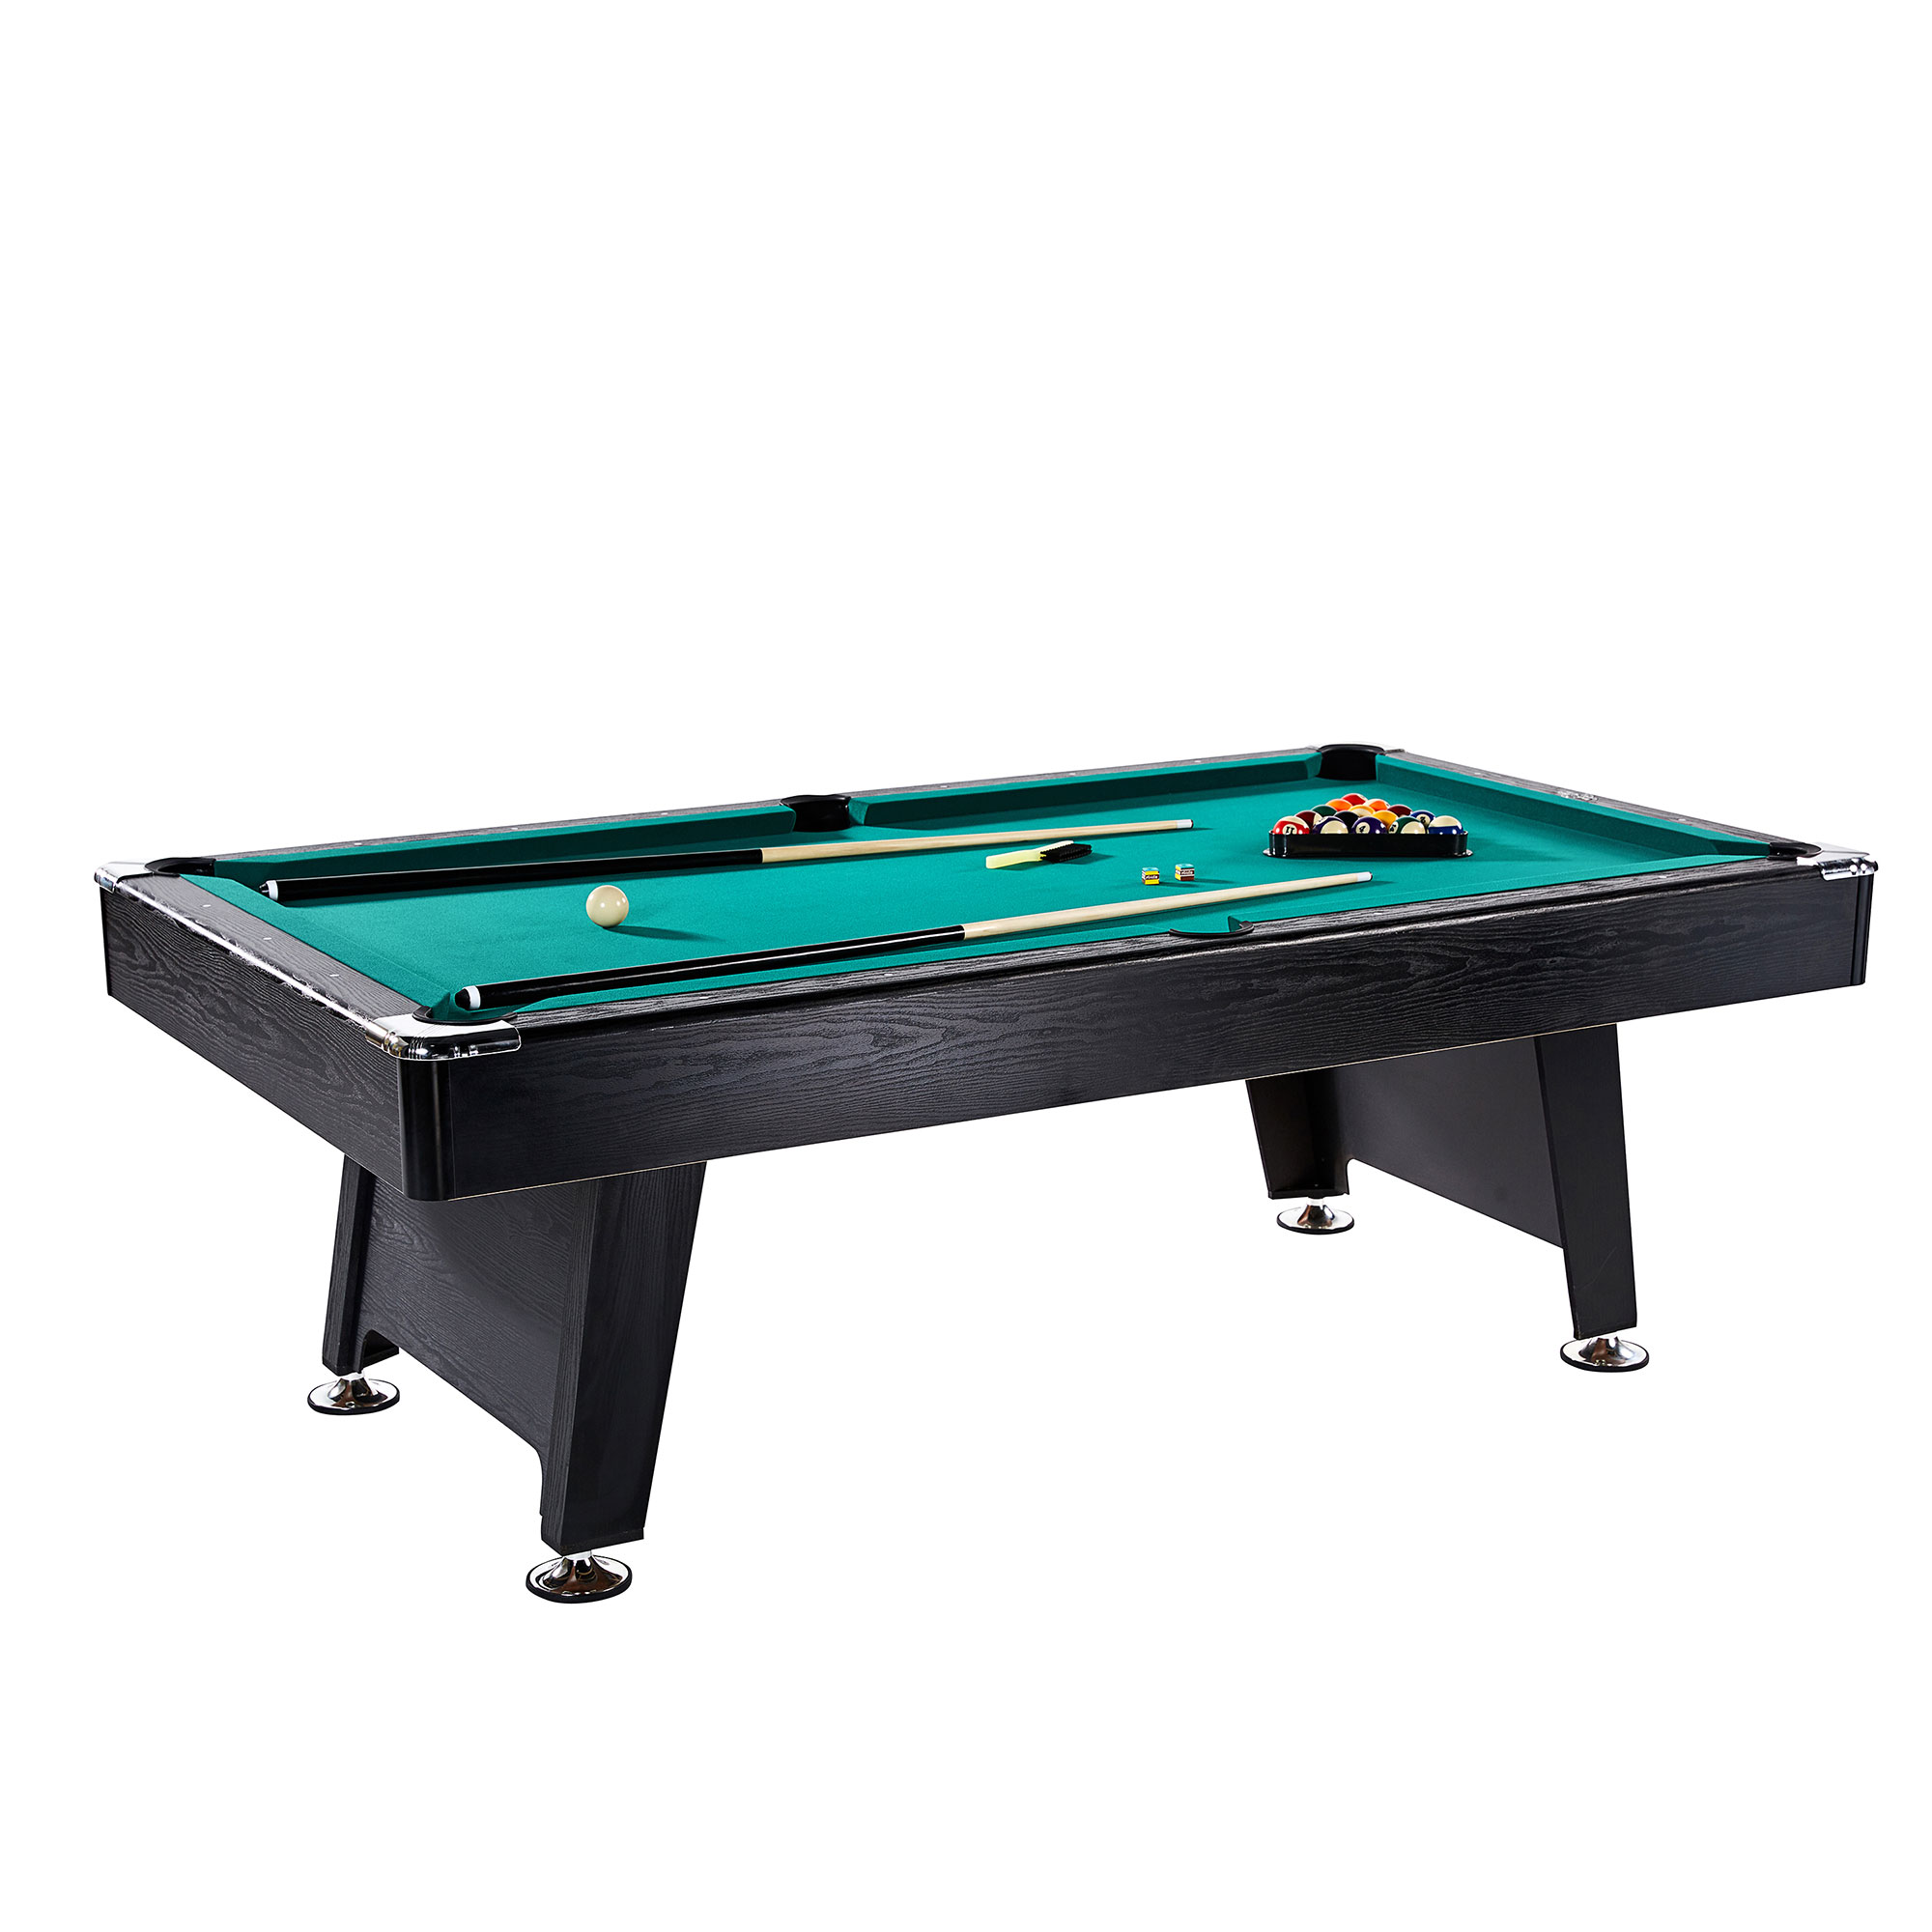 Details About Lancaster 90 Inch Room Billiards Green Felt Pool Table With And Cue